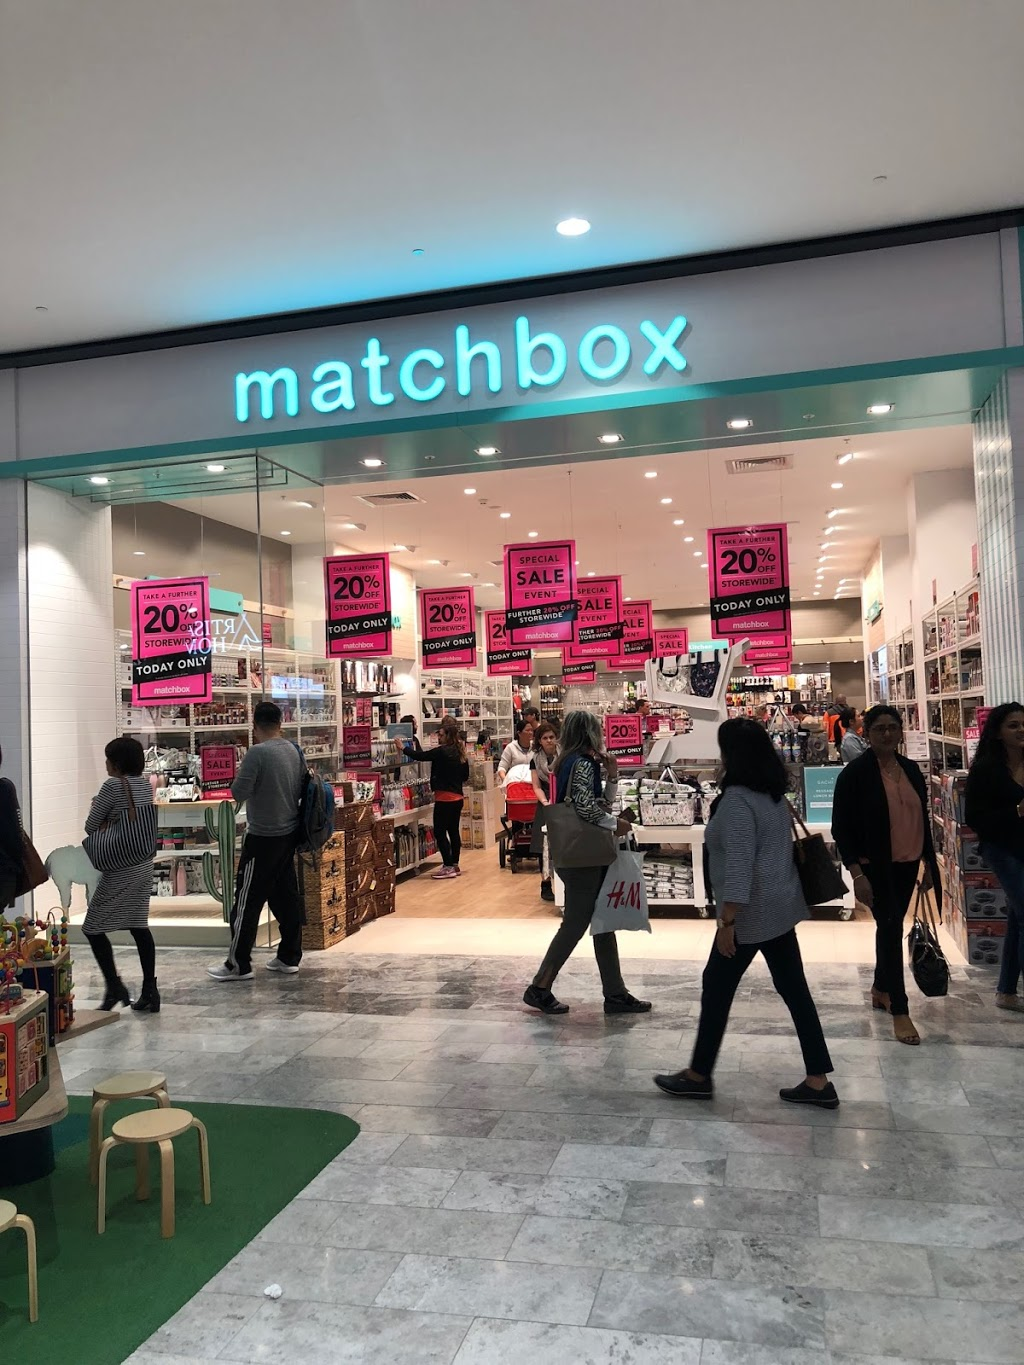 Matchbox | home goods store | Shop G-119, The Glen S, C/235 Springvale Rd, Glen Waverley VIC 3105, Australia | 0398879096 OR +61 3 9887 9096